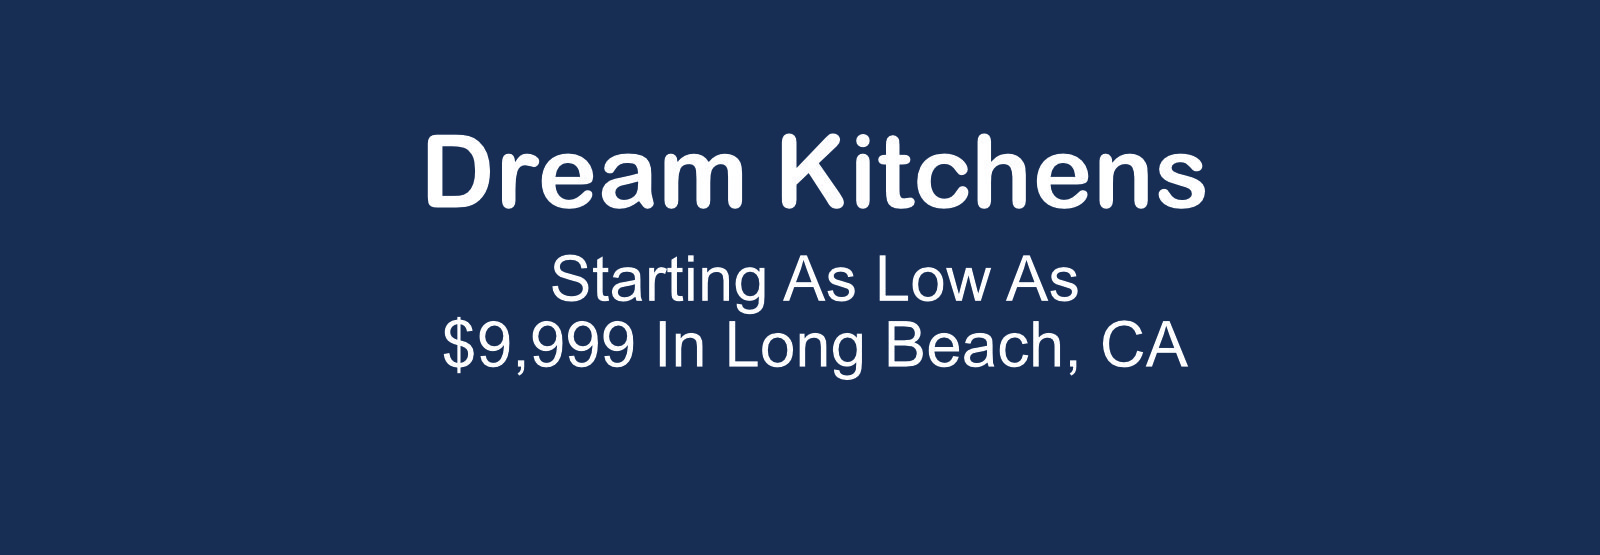 Dream Kitchens Long Beach, CA $9,999